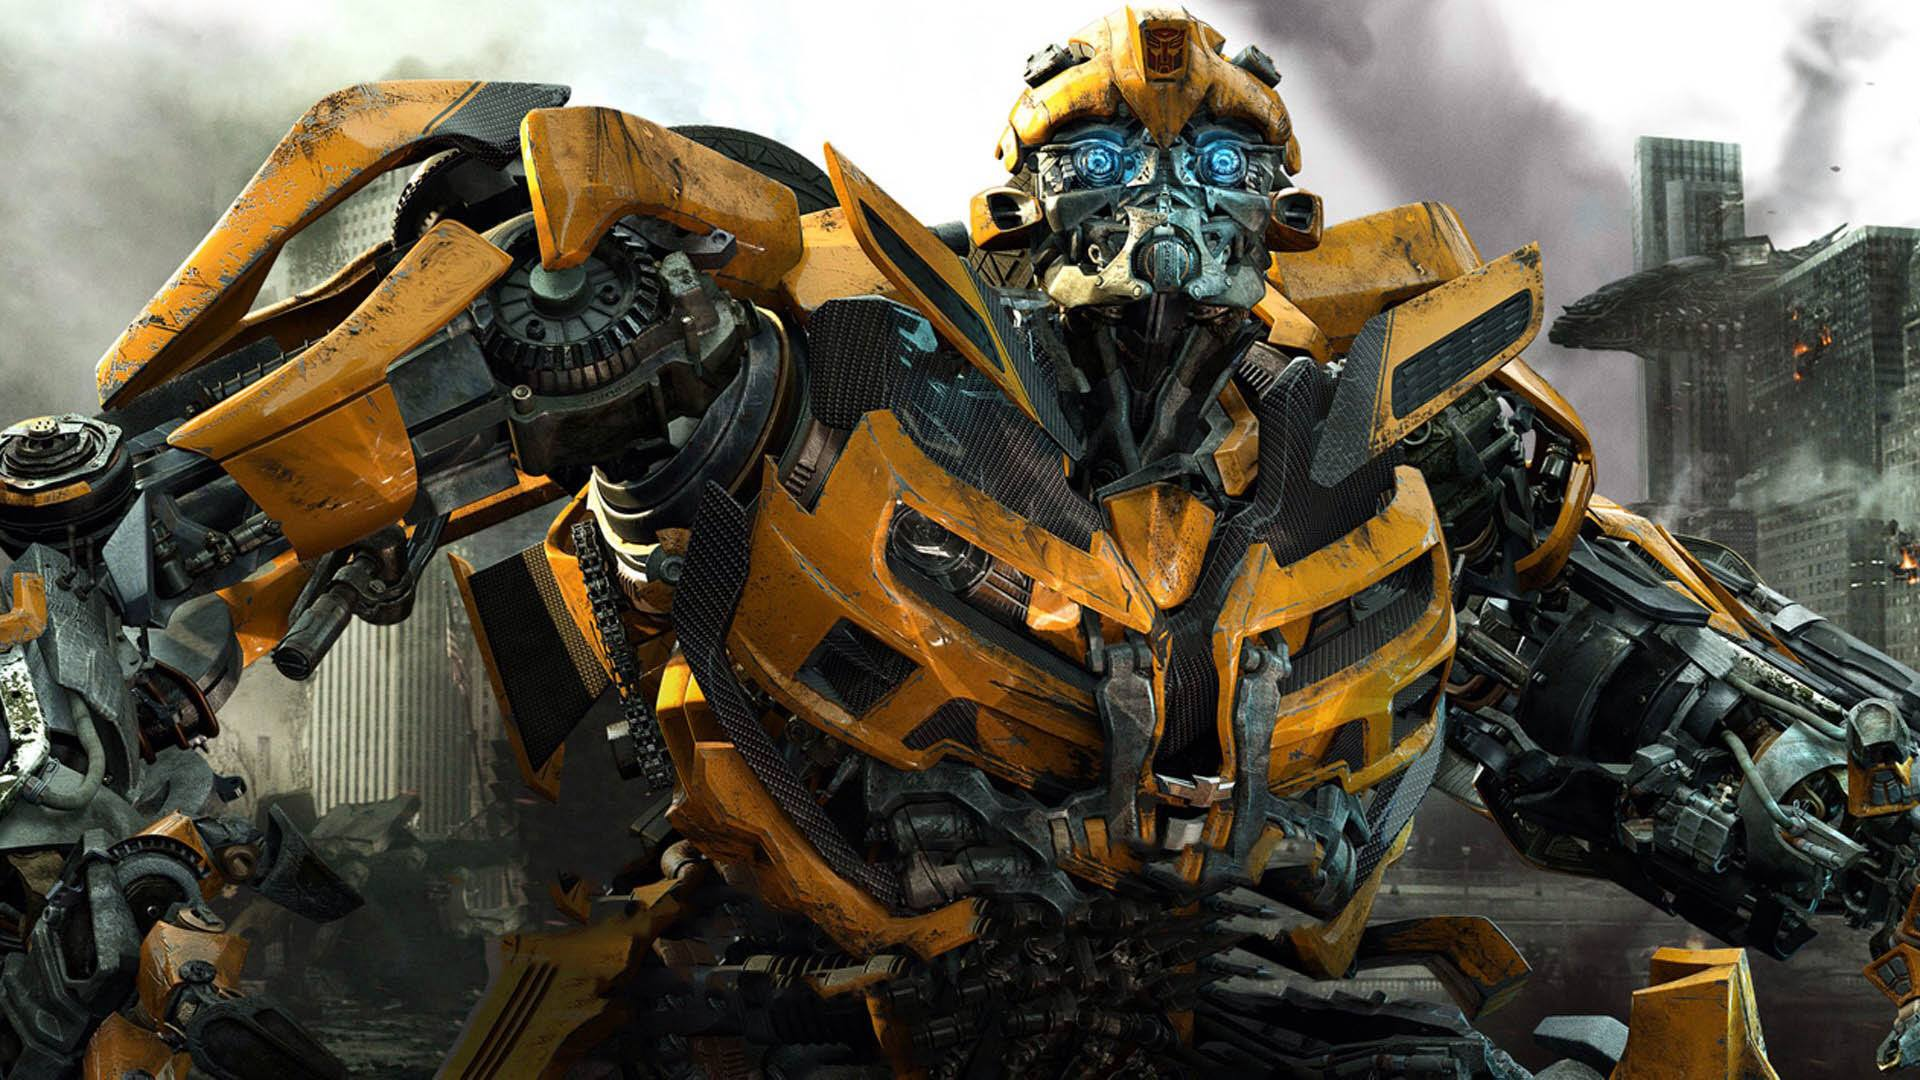 Bumblebee in Transformers: Age of Extinction